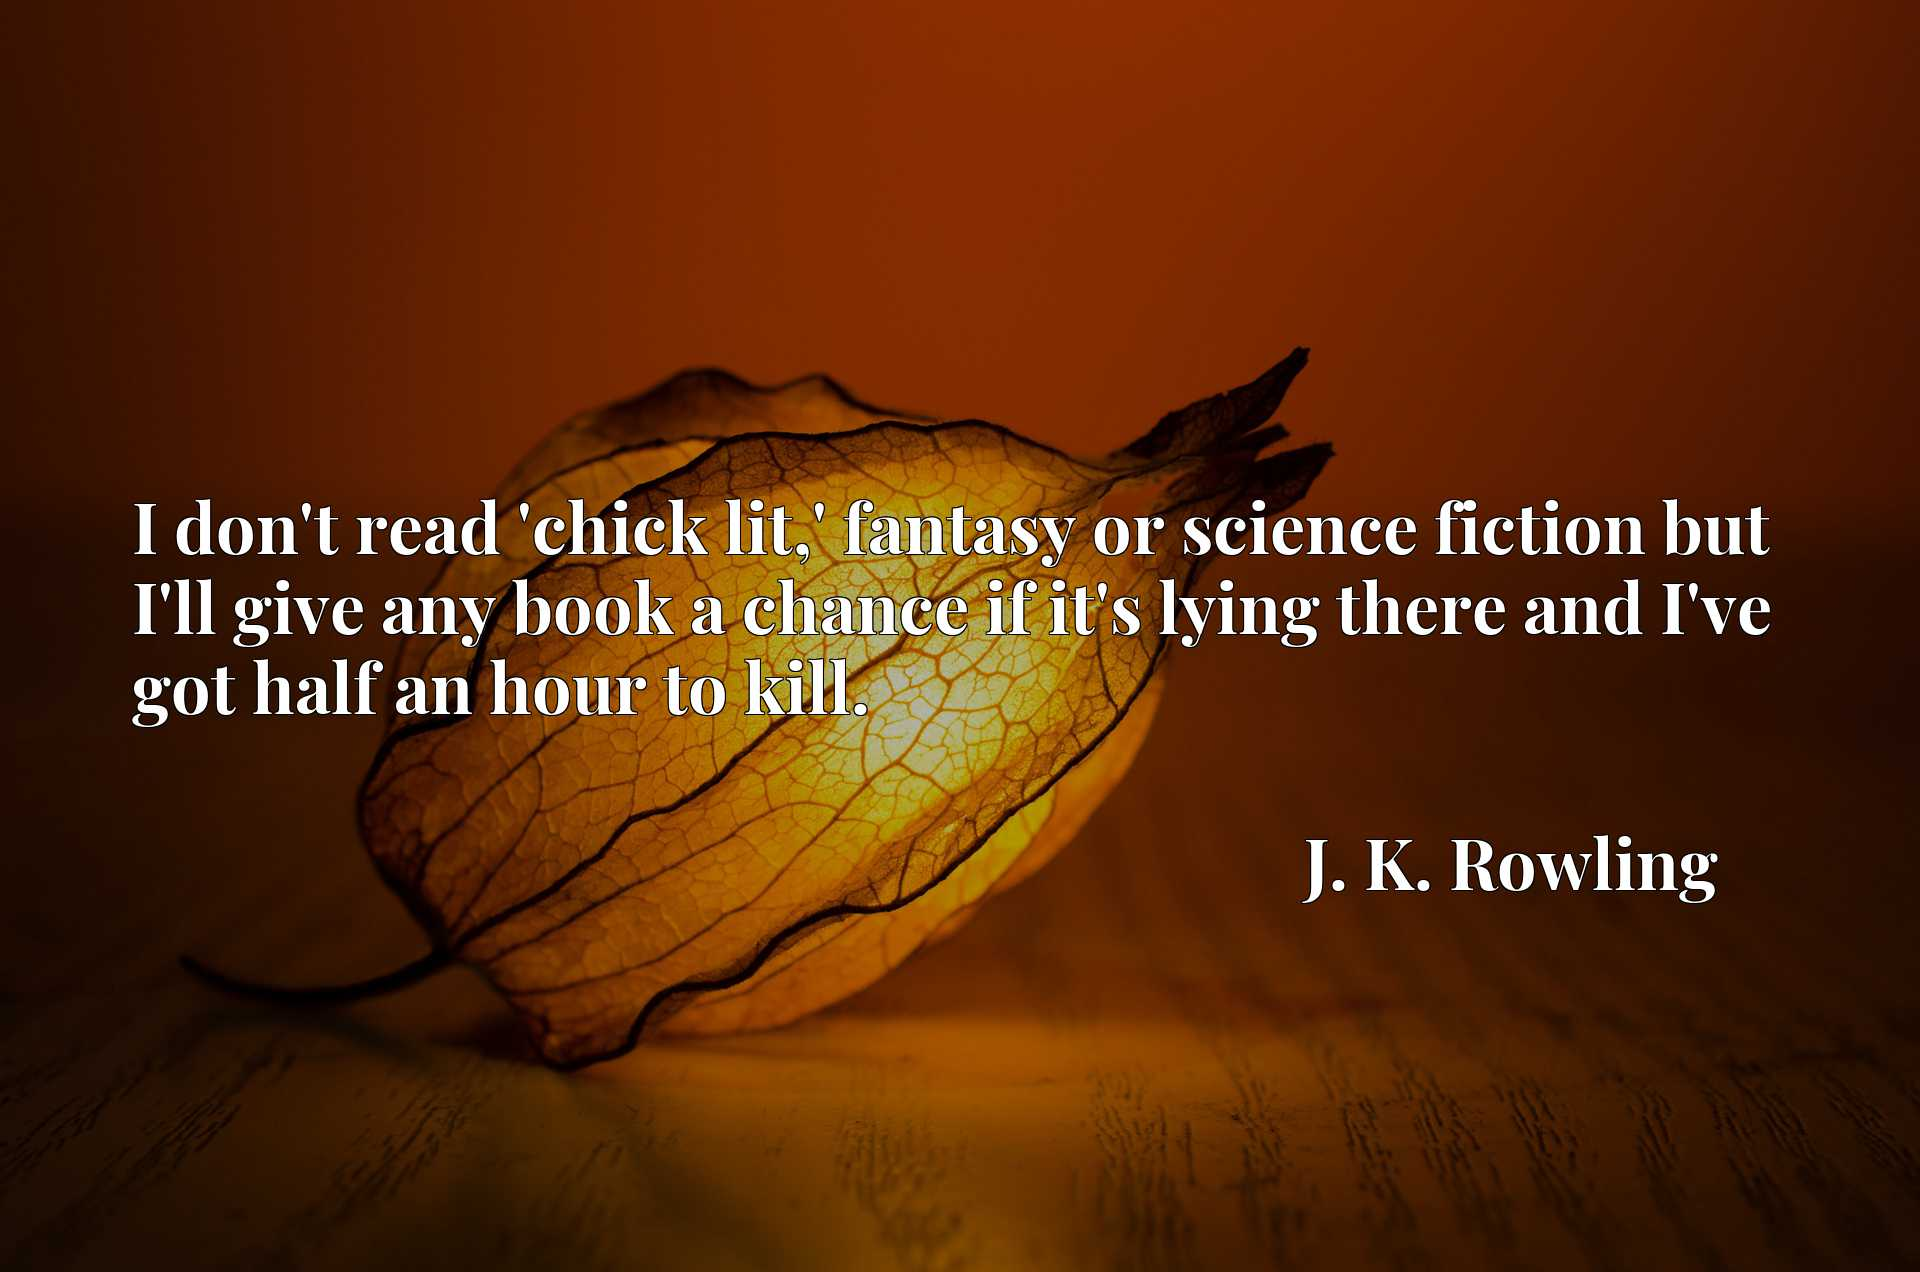 Quote Picture :I don't read 'chick lit,' fantasy or science fiction but I'll give any book a chance if it's lying there and I've got half an hour to kill.